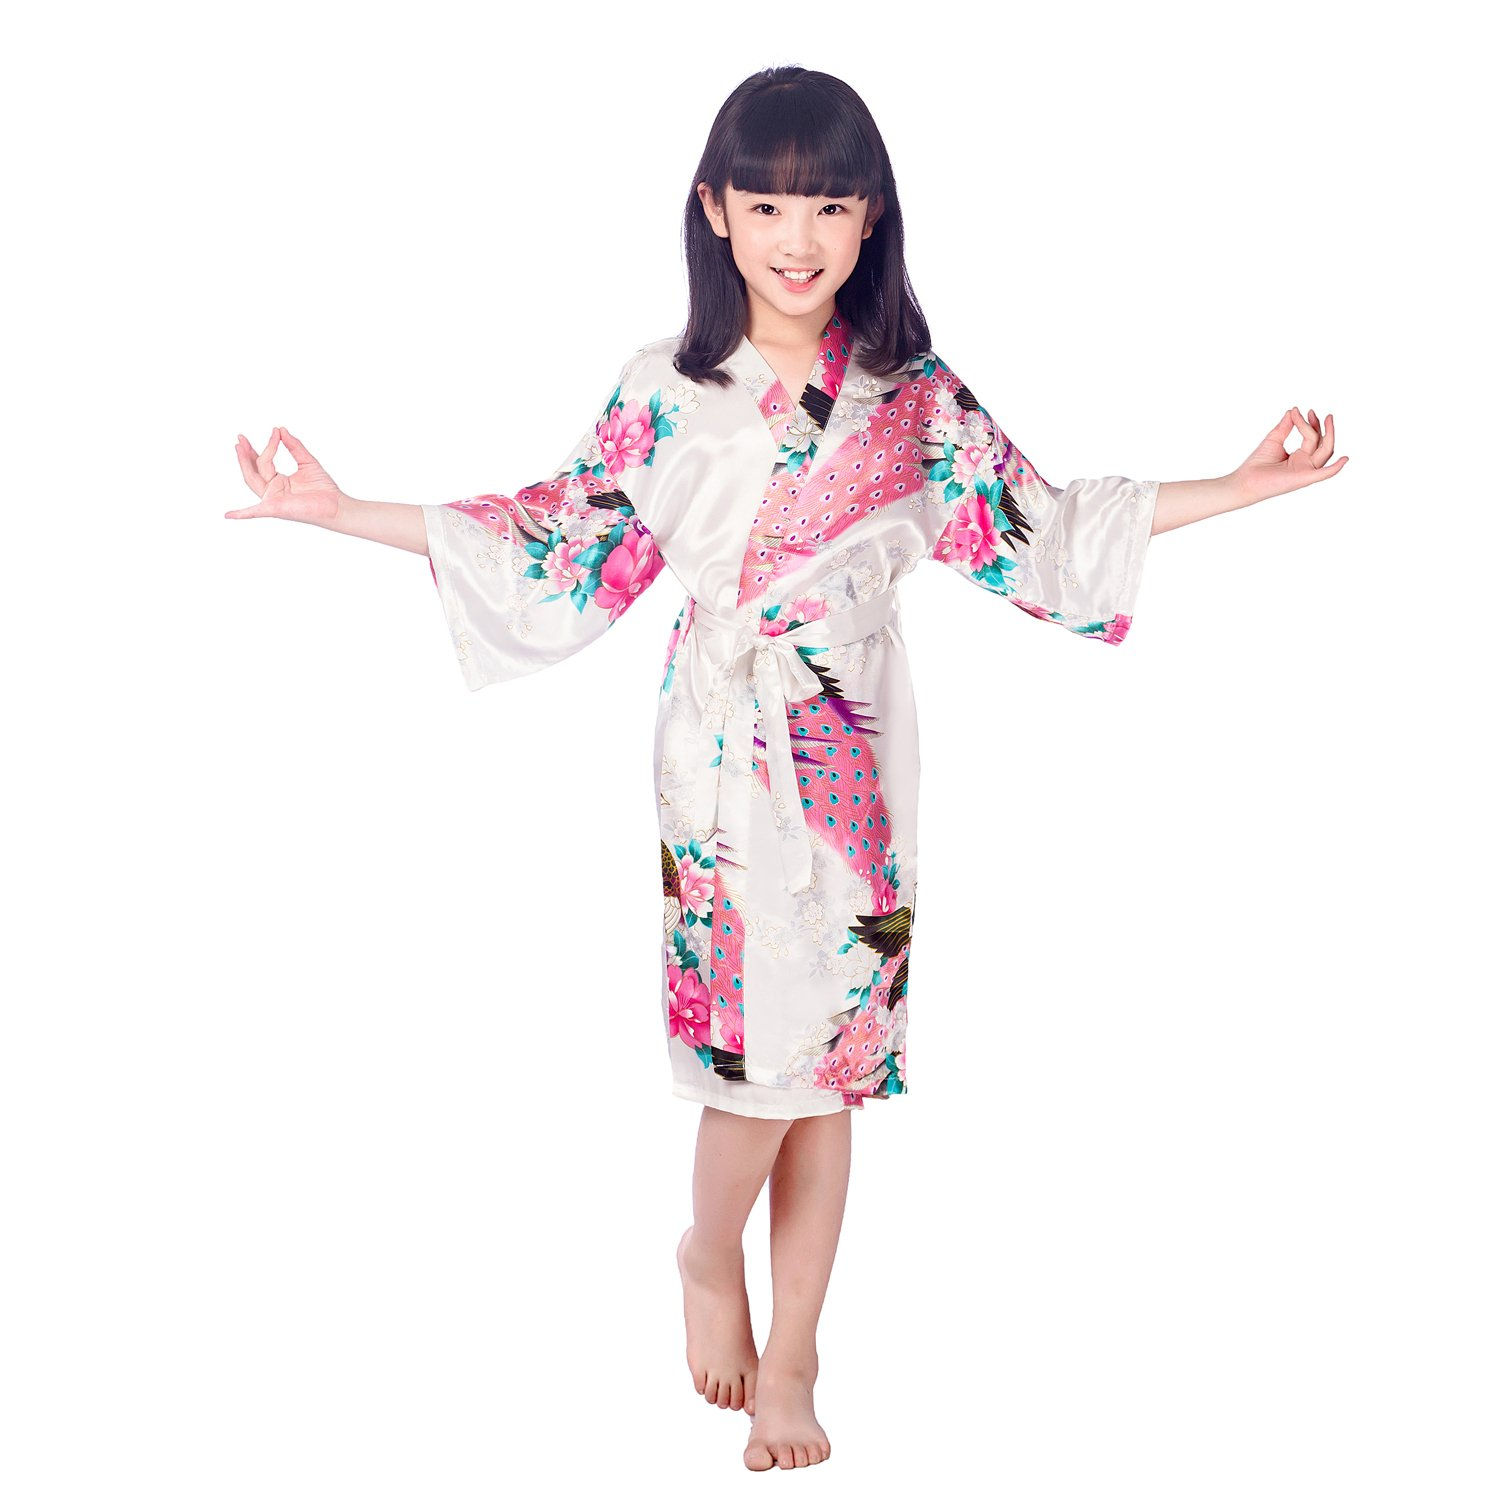 Kissababy Girl's Silk Kimono Robe Peacock Flower Bathrobe Sleepwear Nightgown for Spa Party Wedding Birthday